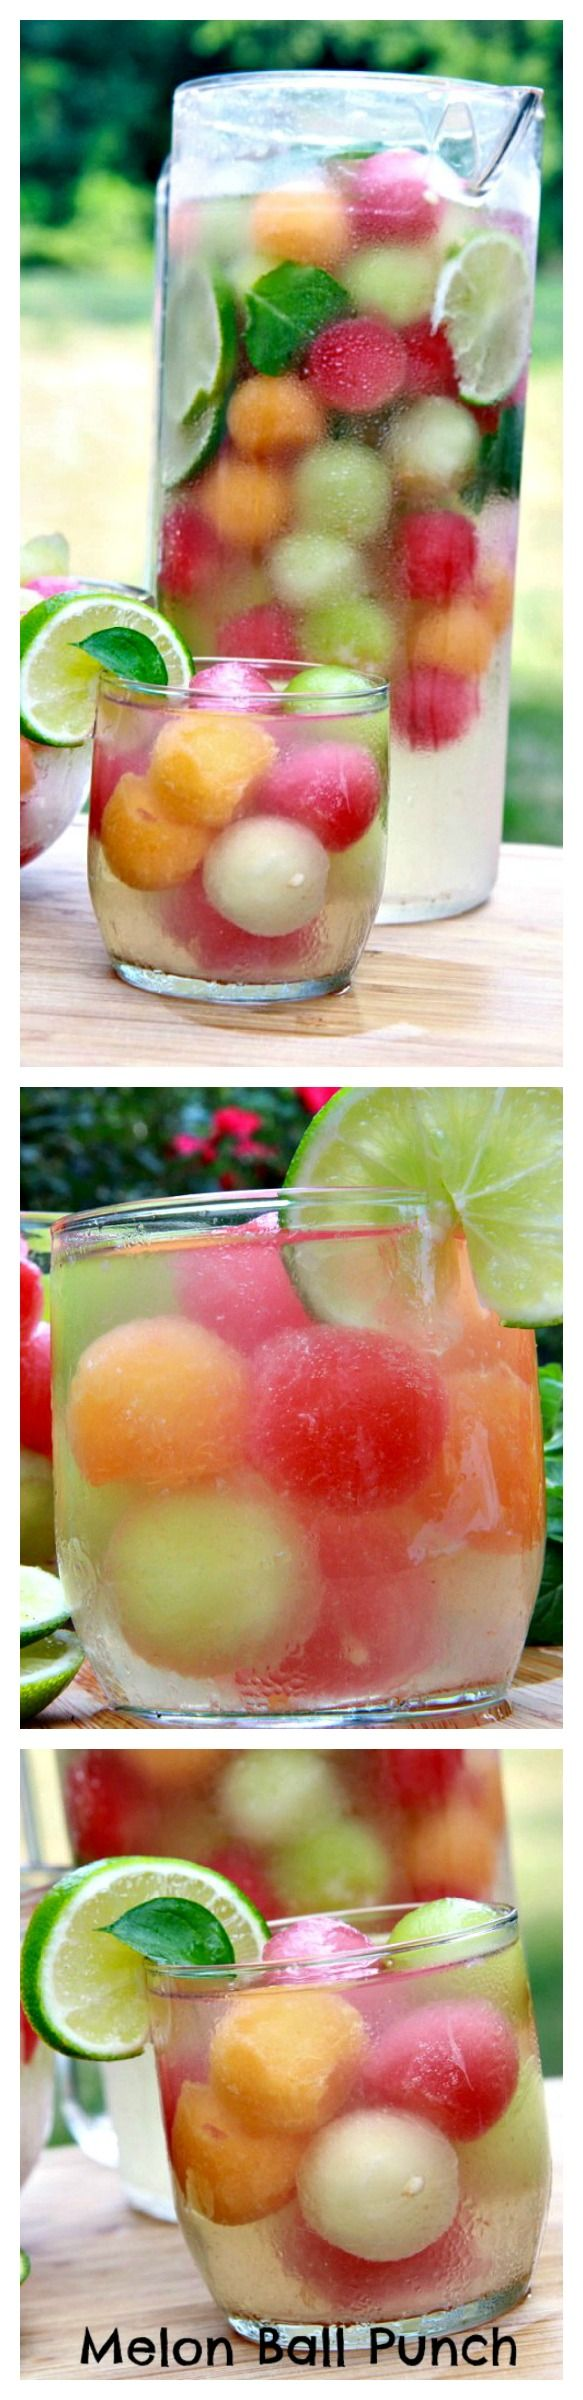 Refreshing Melon Ball Punch!